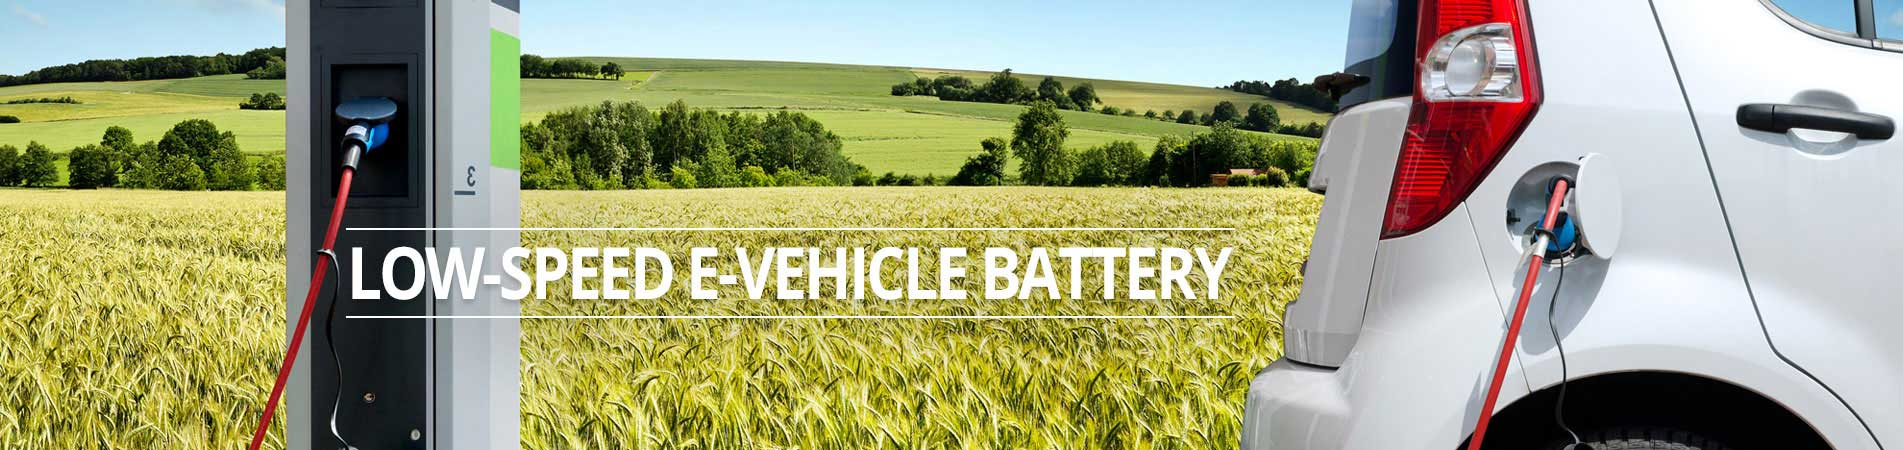 low speed e-vehicle battery banner